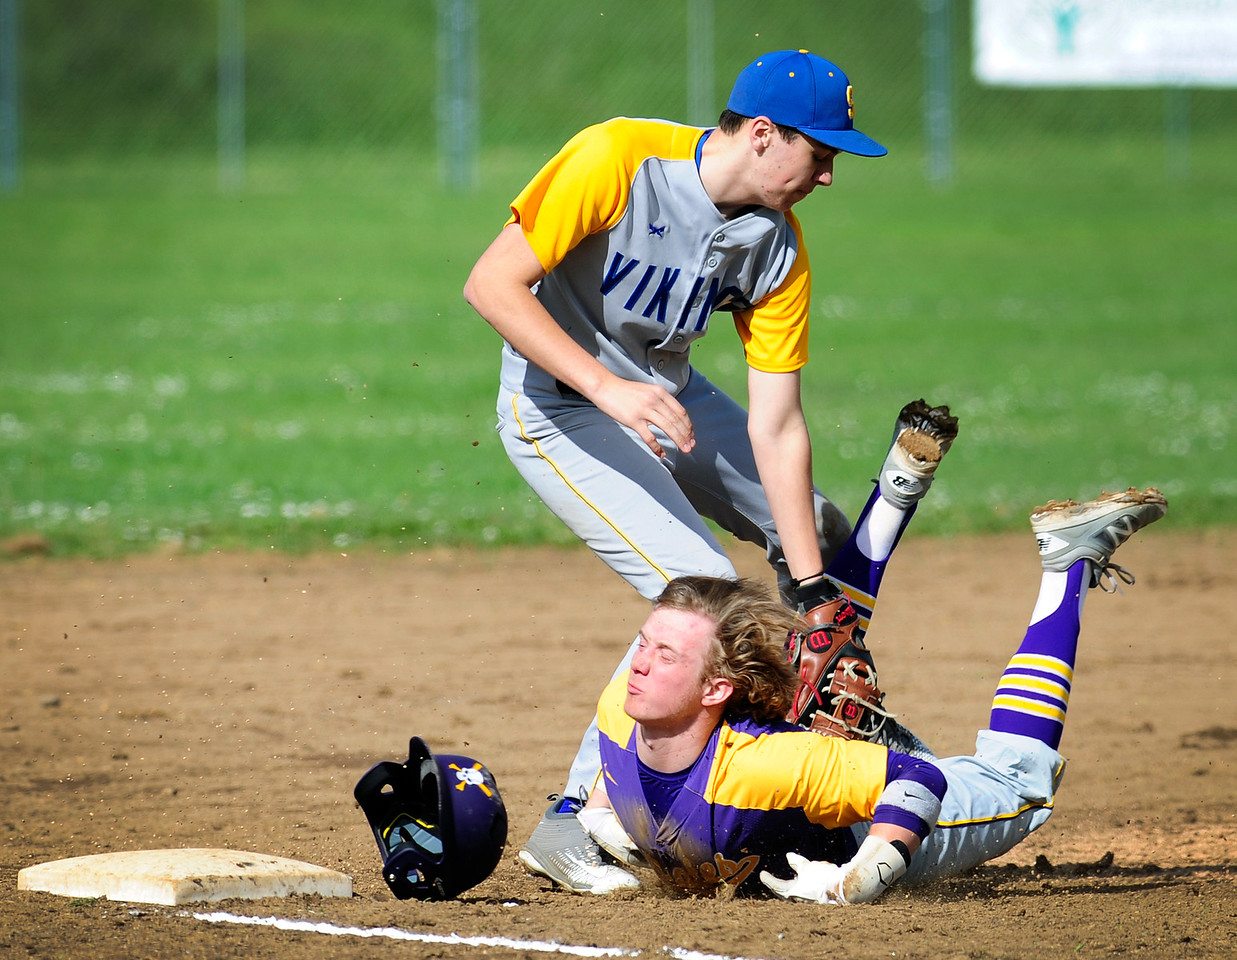 Siuslaw's Caleb Hennessee (2) tags Marshfield's Braden Denton (1) for an out as he slides into third base during the first game of the double header home opener against Siuslaw. The Pirates defeated the Vikings, 9-5.